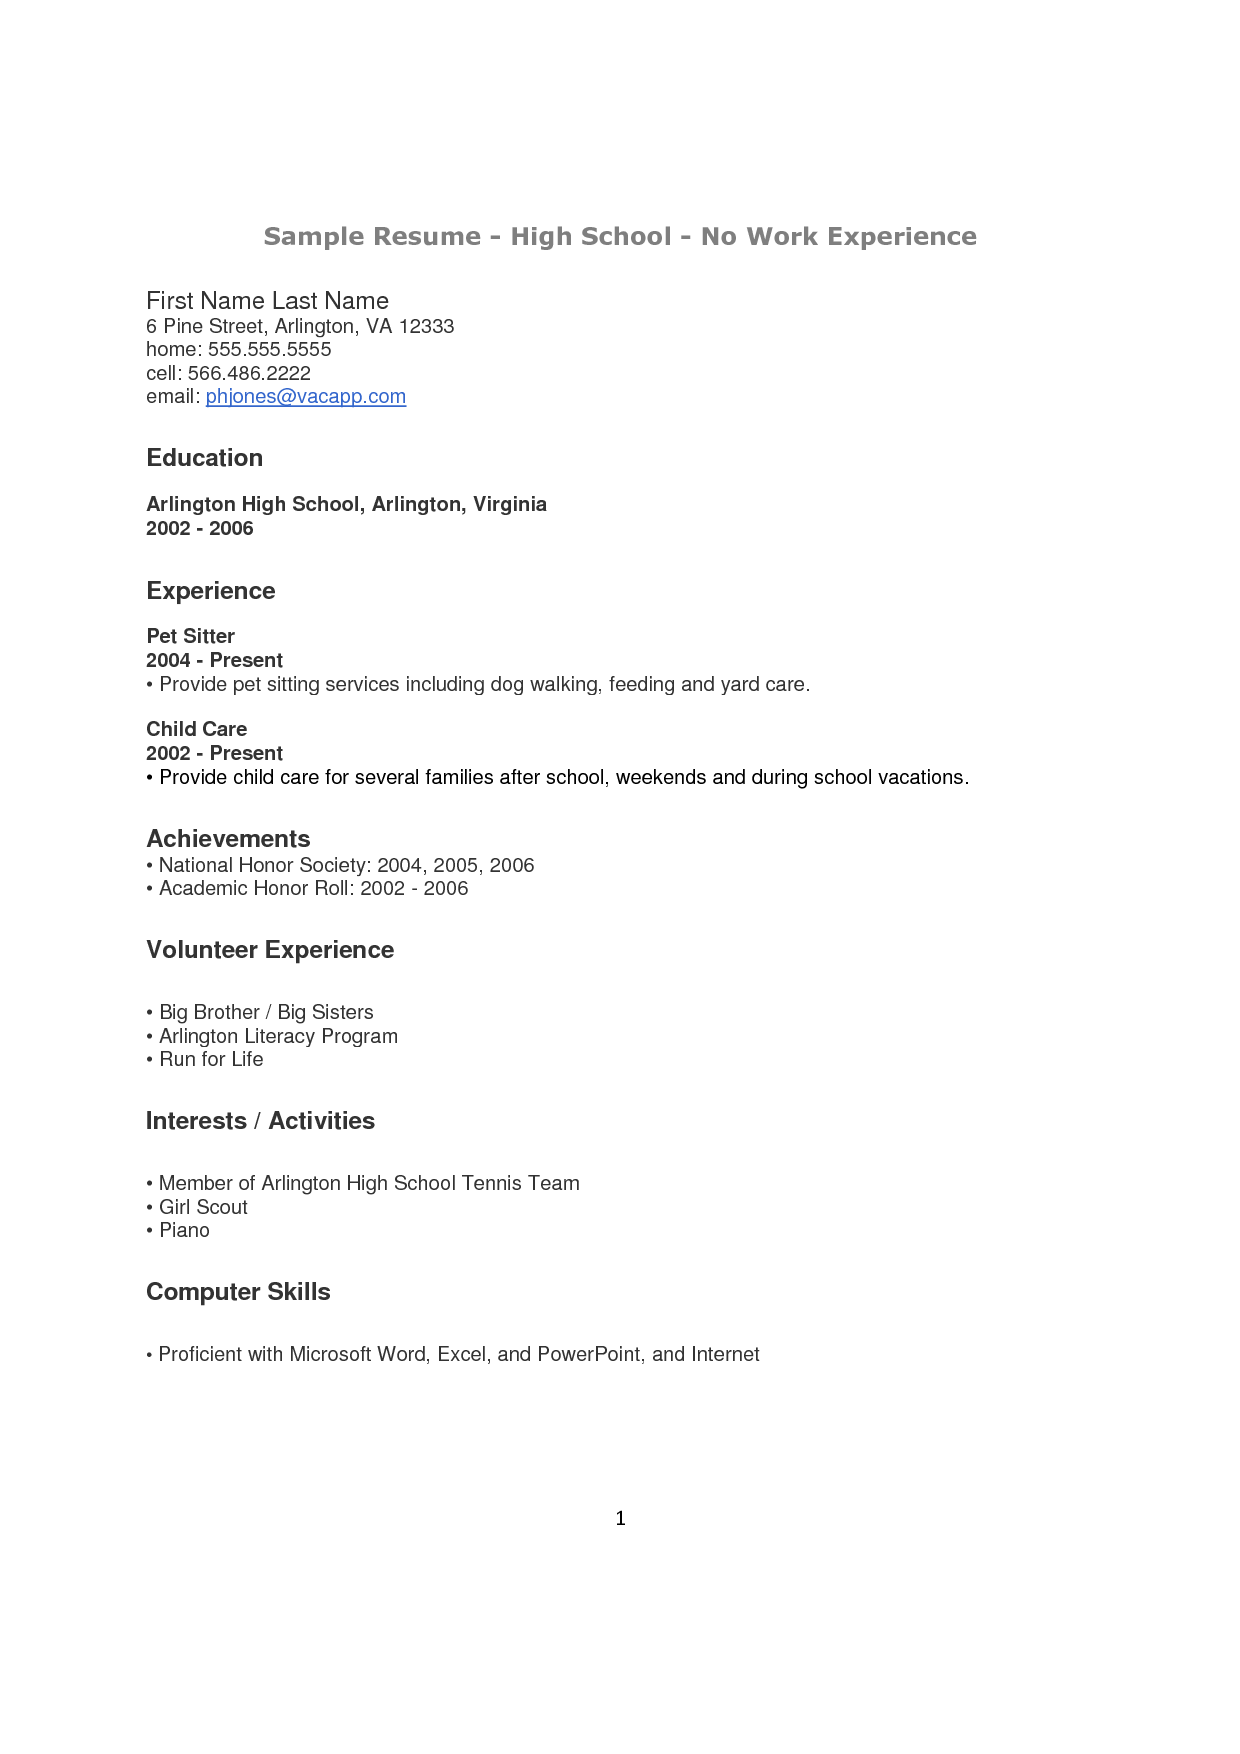 No Work Experience Resume Resume For High School Student With No Work Experience  Resume .